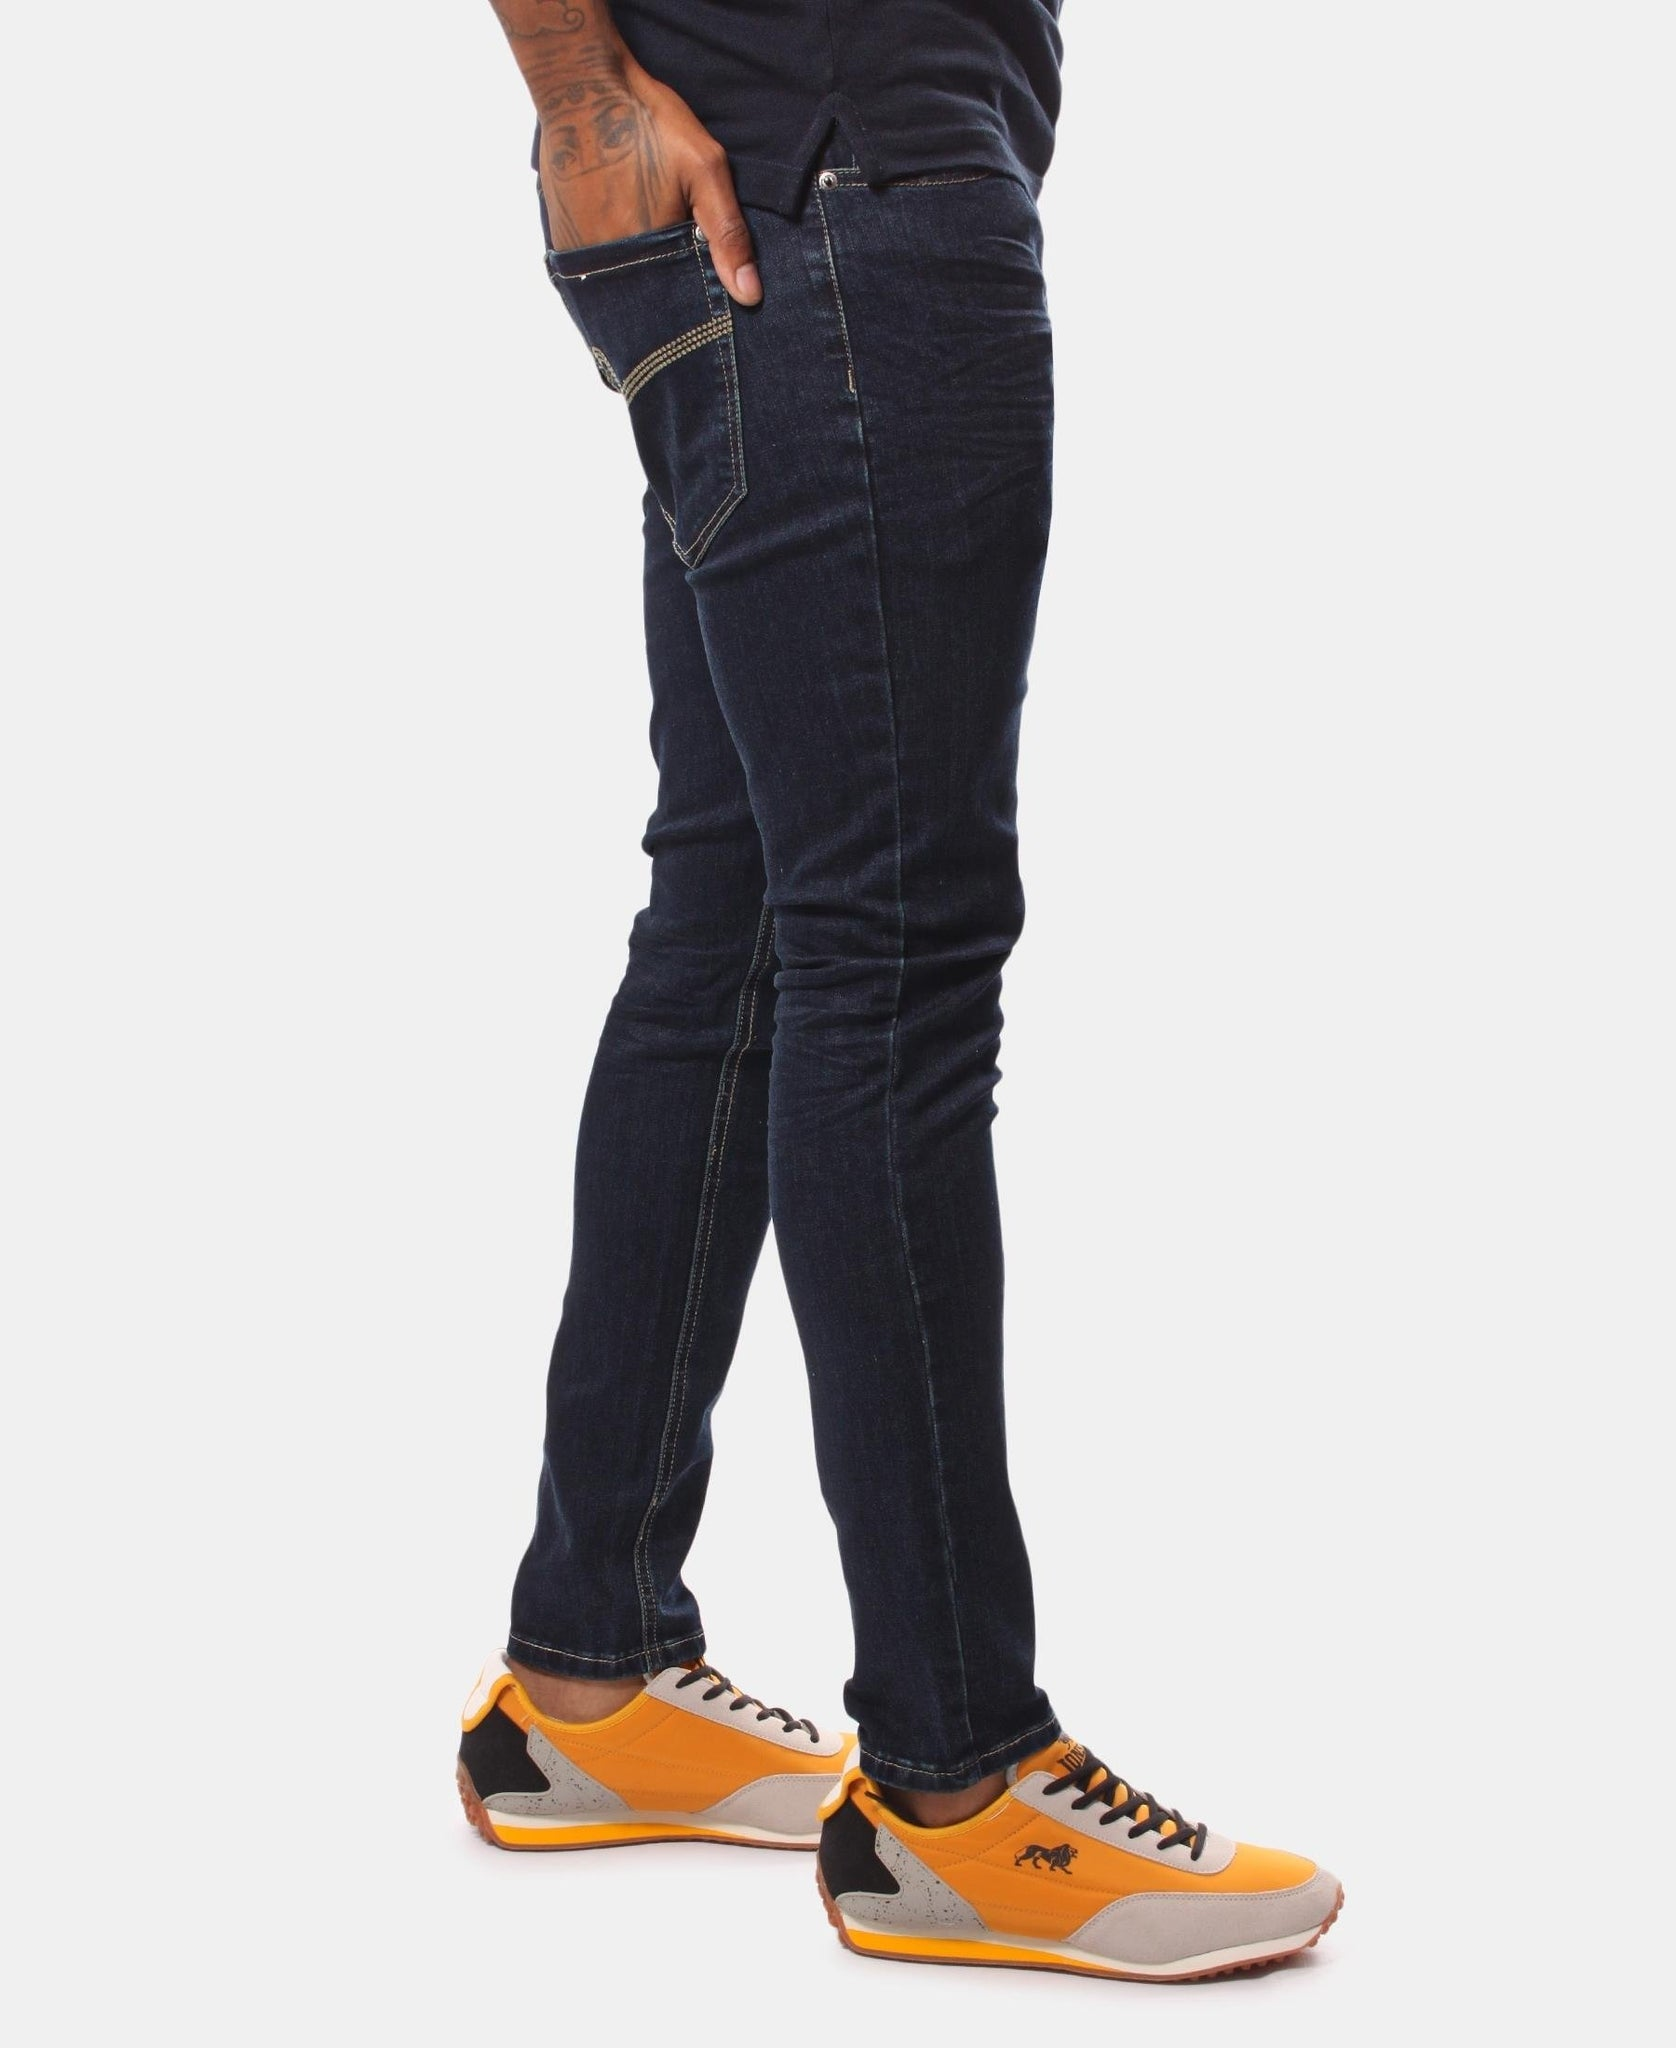 Men's Straight Skinny Jeans - Navy